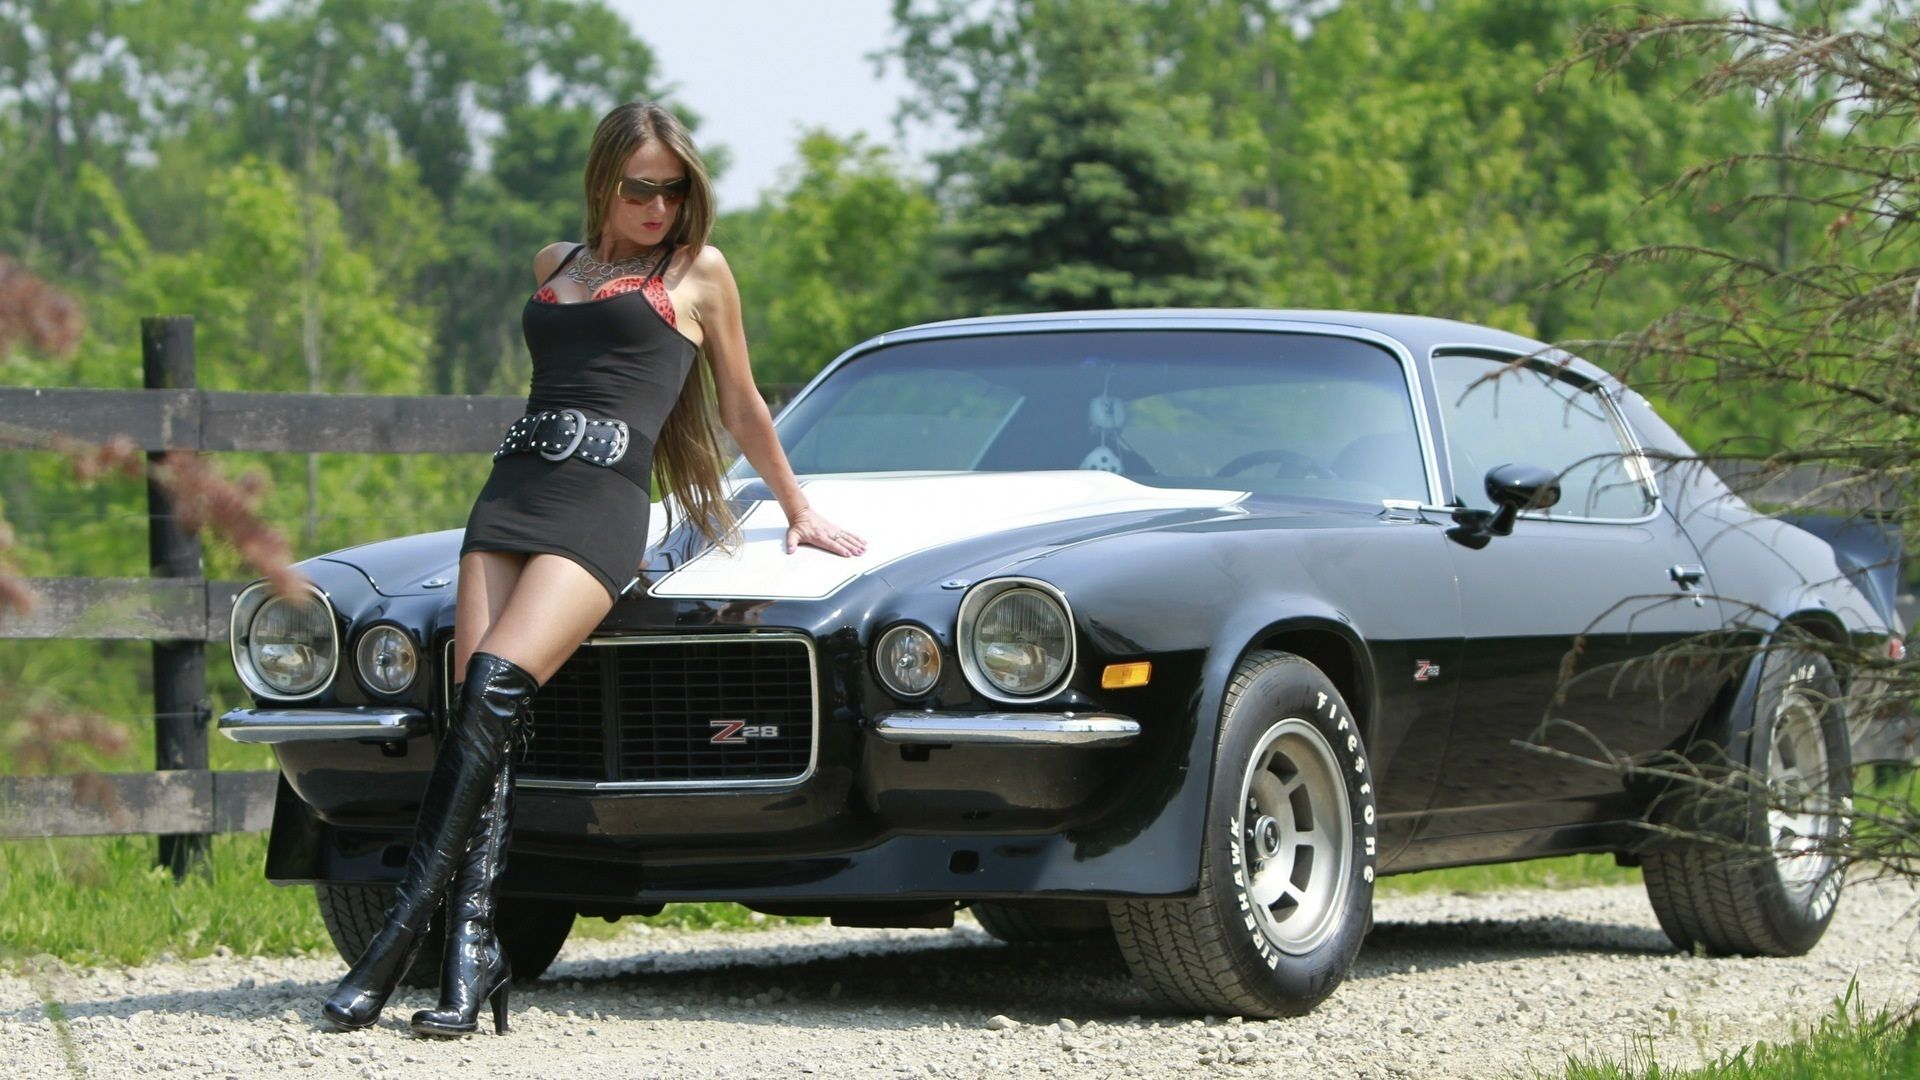 1970 Chevy Camaro Z28, girls hot but would rather have the ...